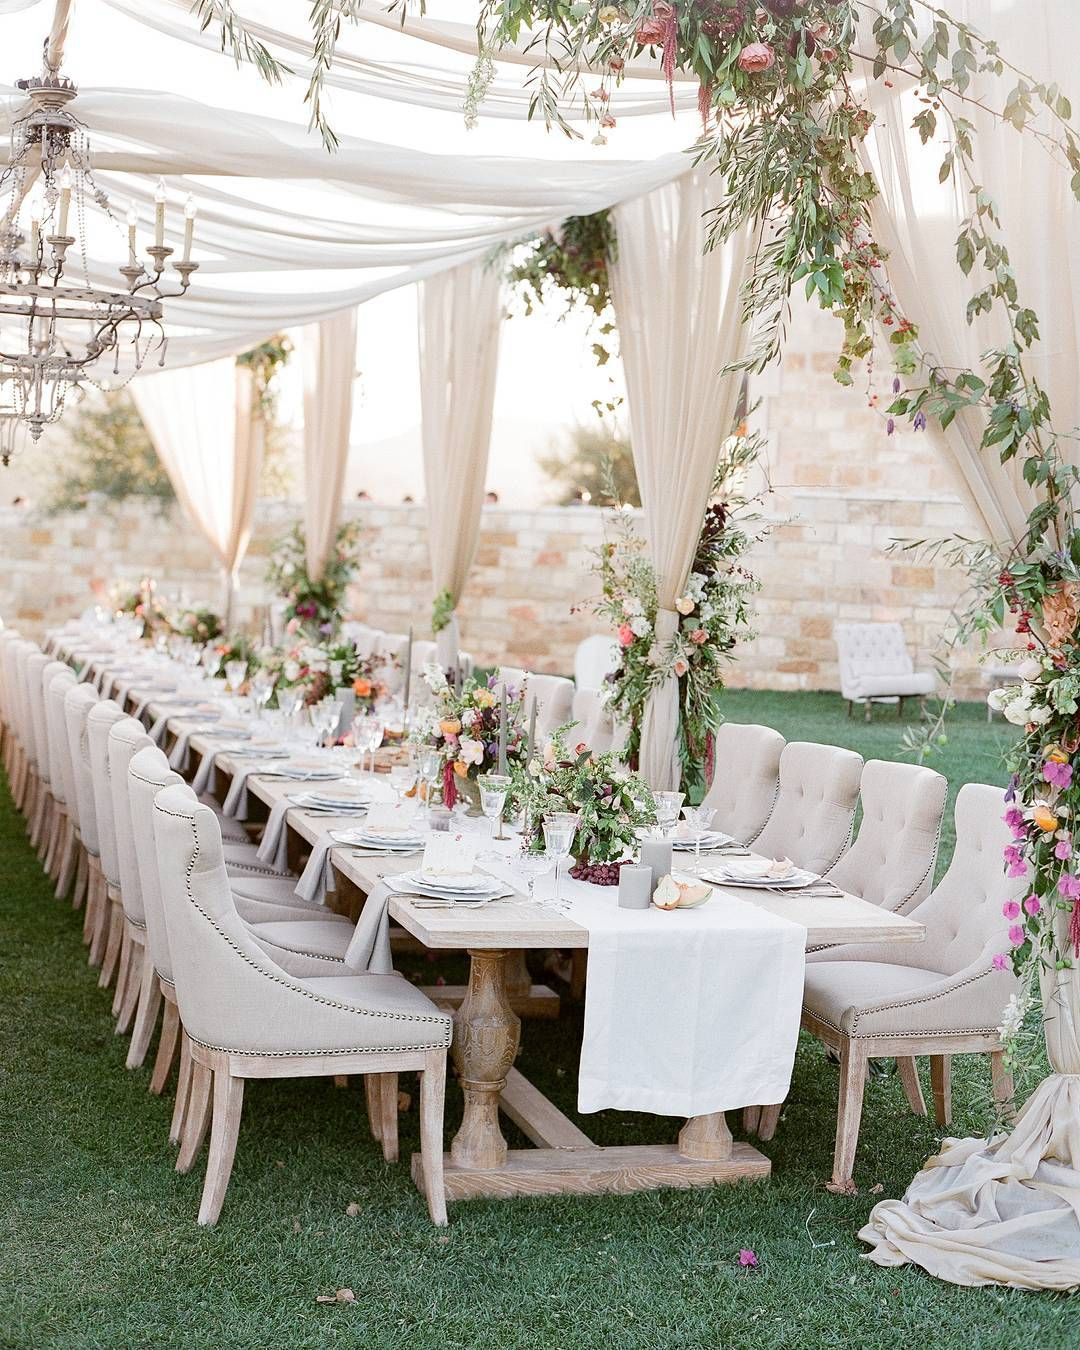 Cool Wedding Reception Ideas: Pin By Lookmai Patcharida On Cool Wedding Ideas And Trends